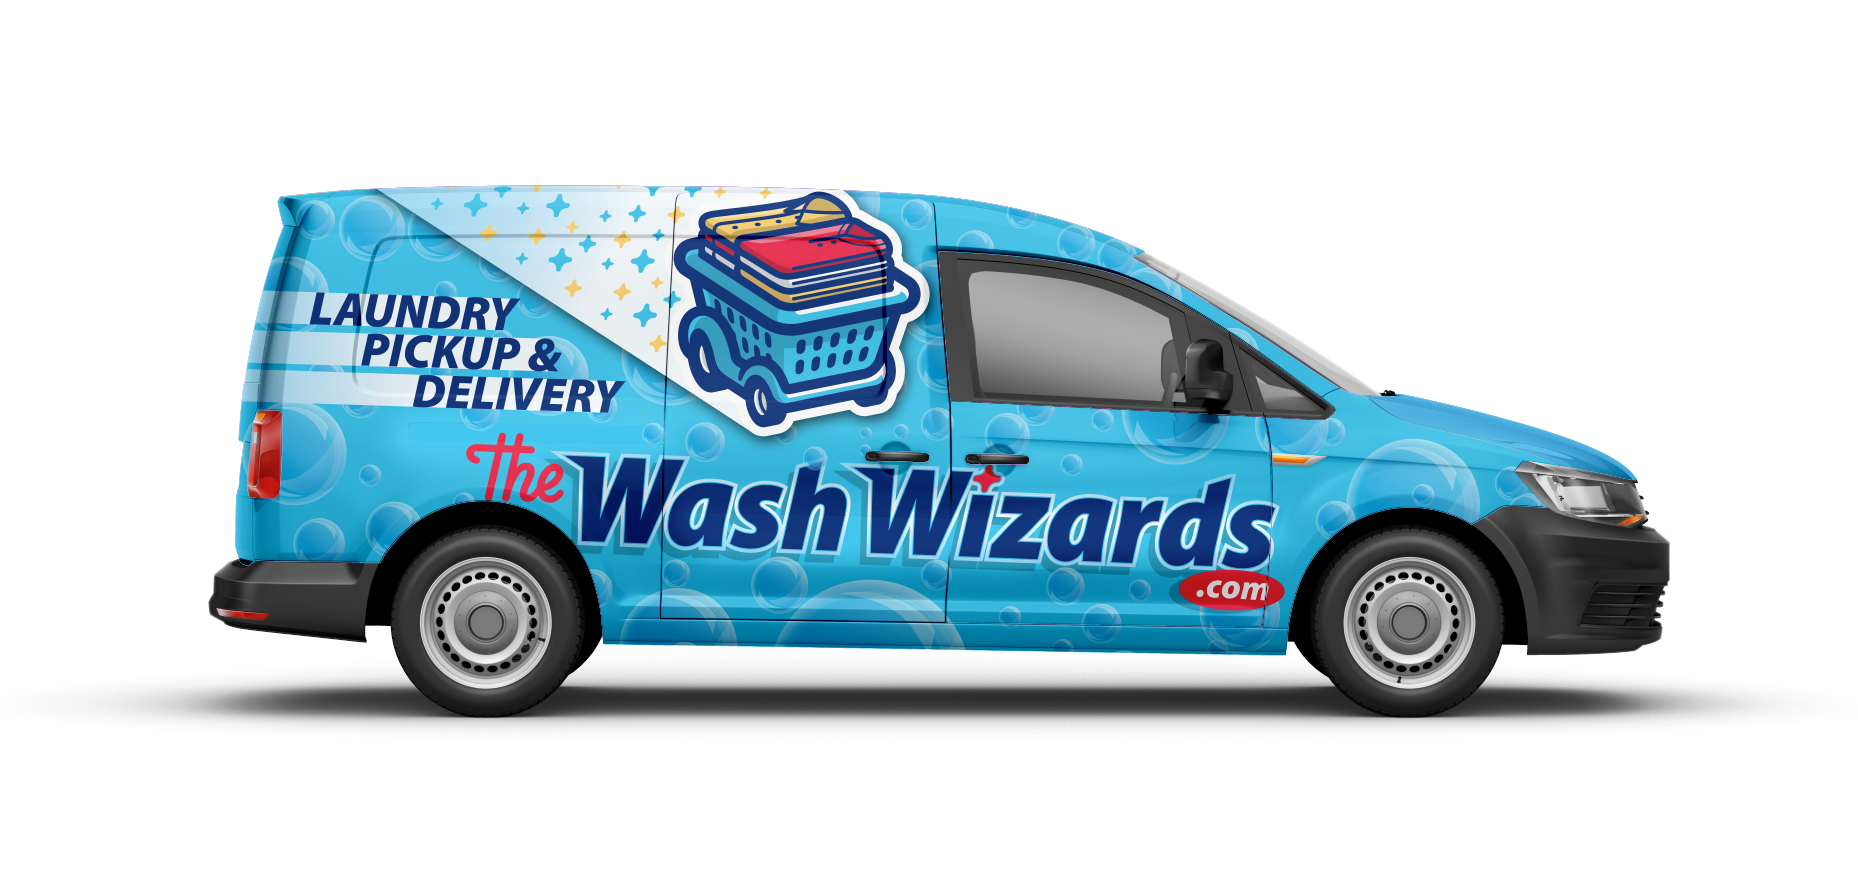 Wash Wizards Laundry Pickup & Delivery Service - Oxnard image 4